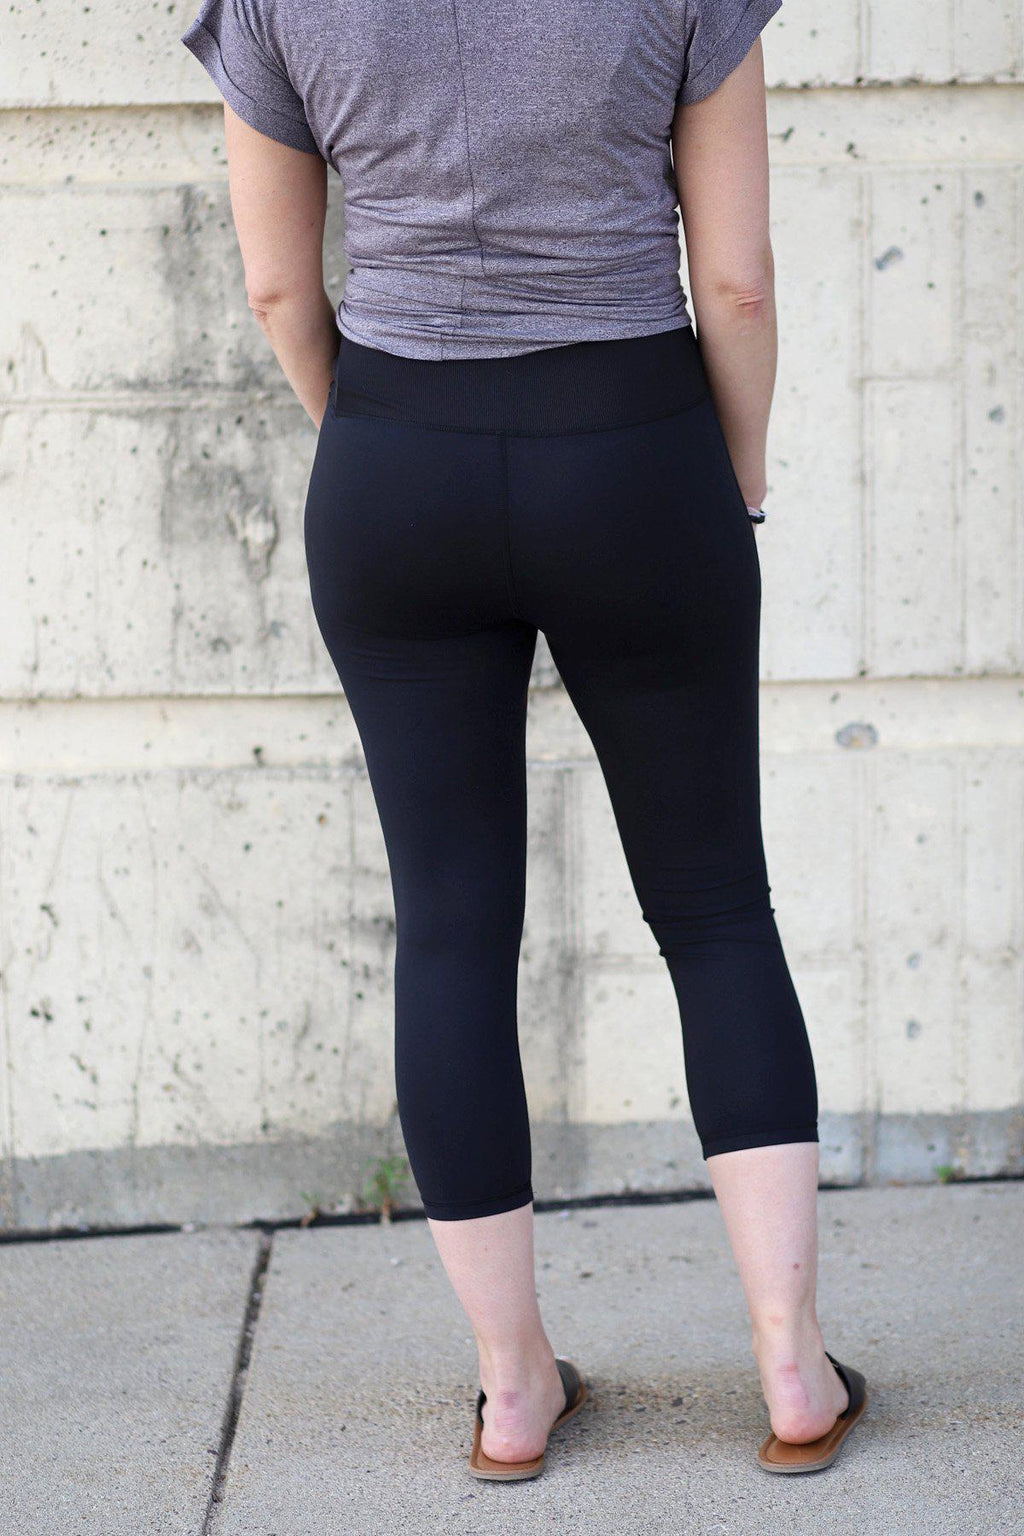 Livia Highwaist Capri Leggings - Gallery 512 Boutique